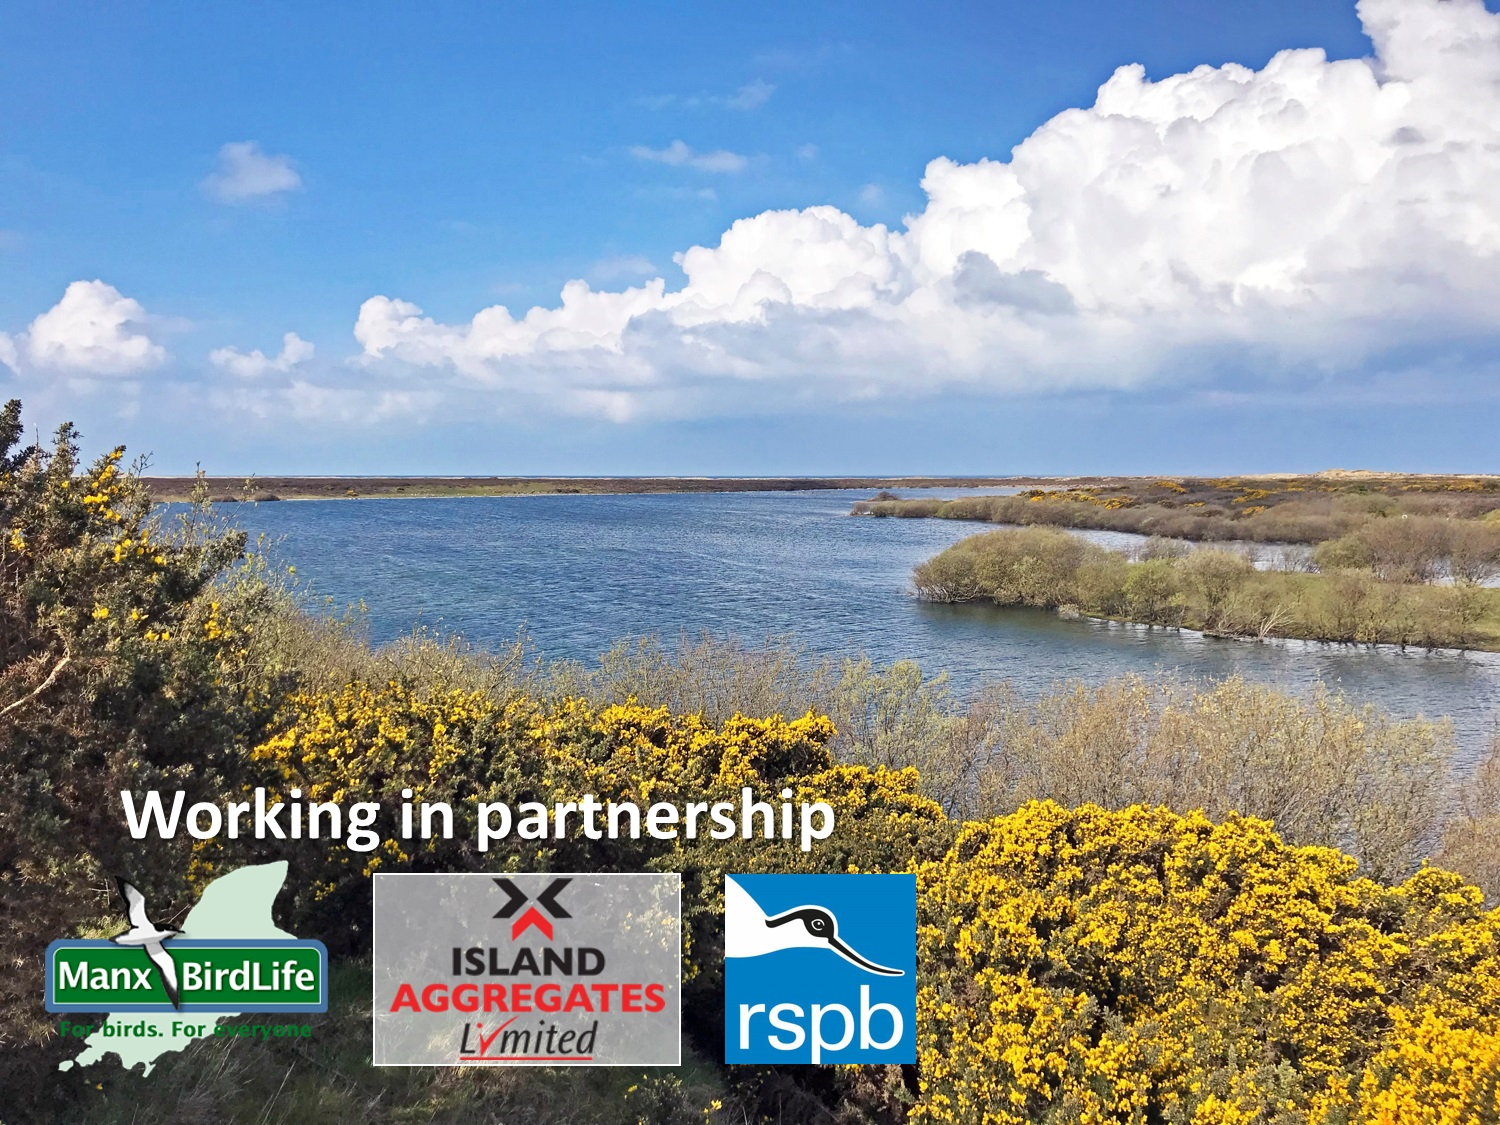 Manx BirdLife is working partnership with Island Aggregates and RSPB to create a very special place for birds and people.